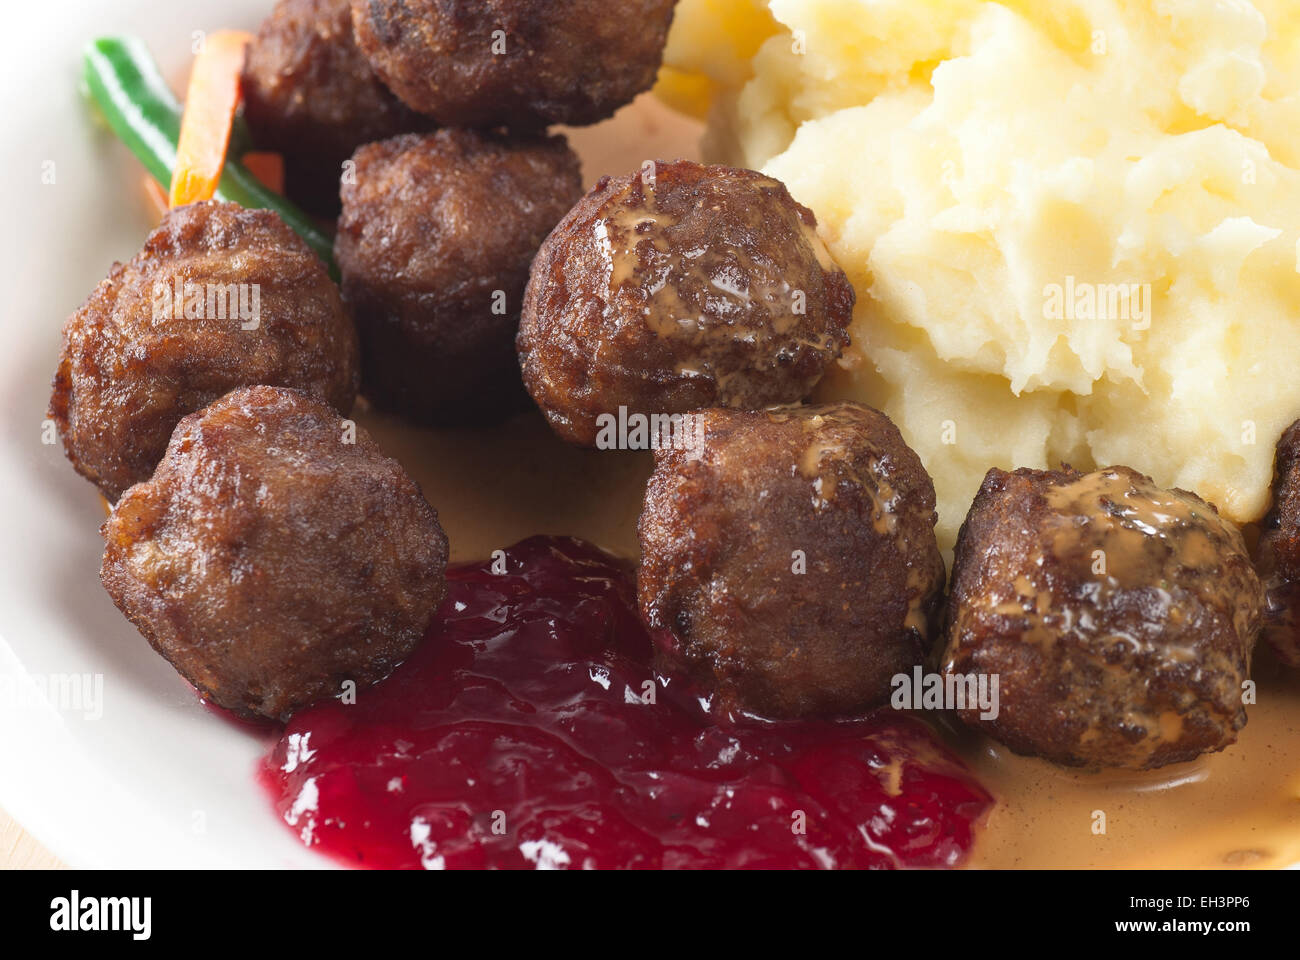 how to make meatballs with lingonberry sauce